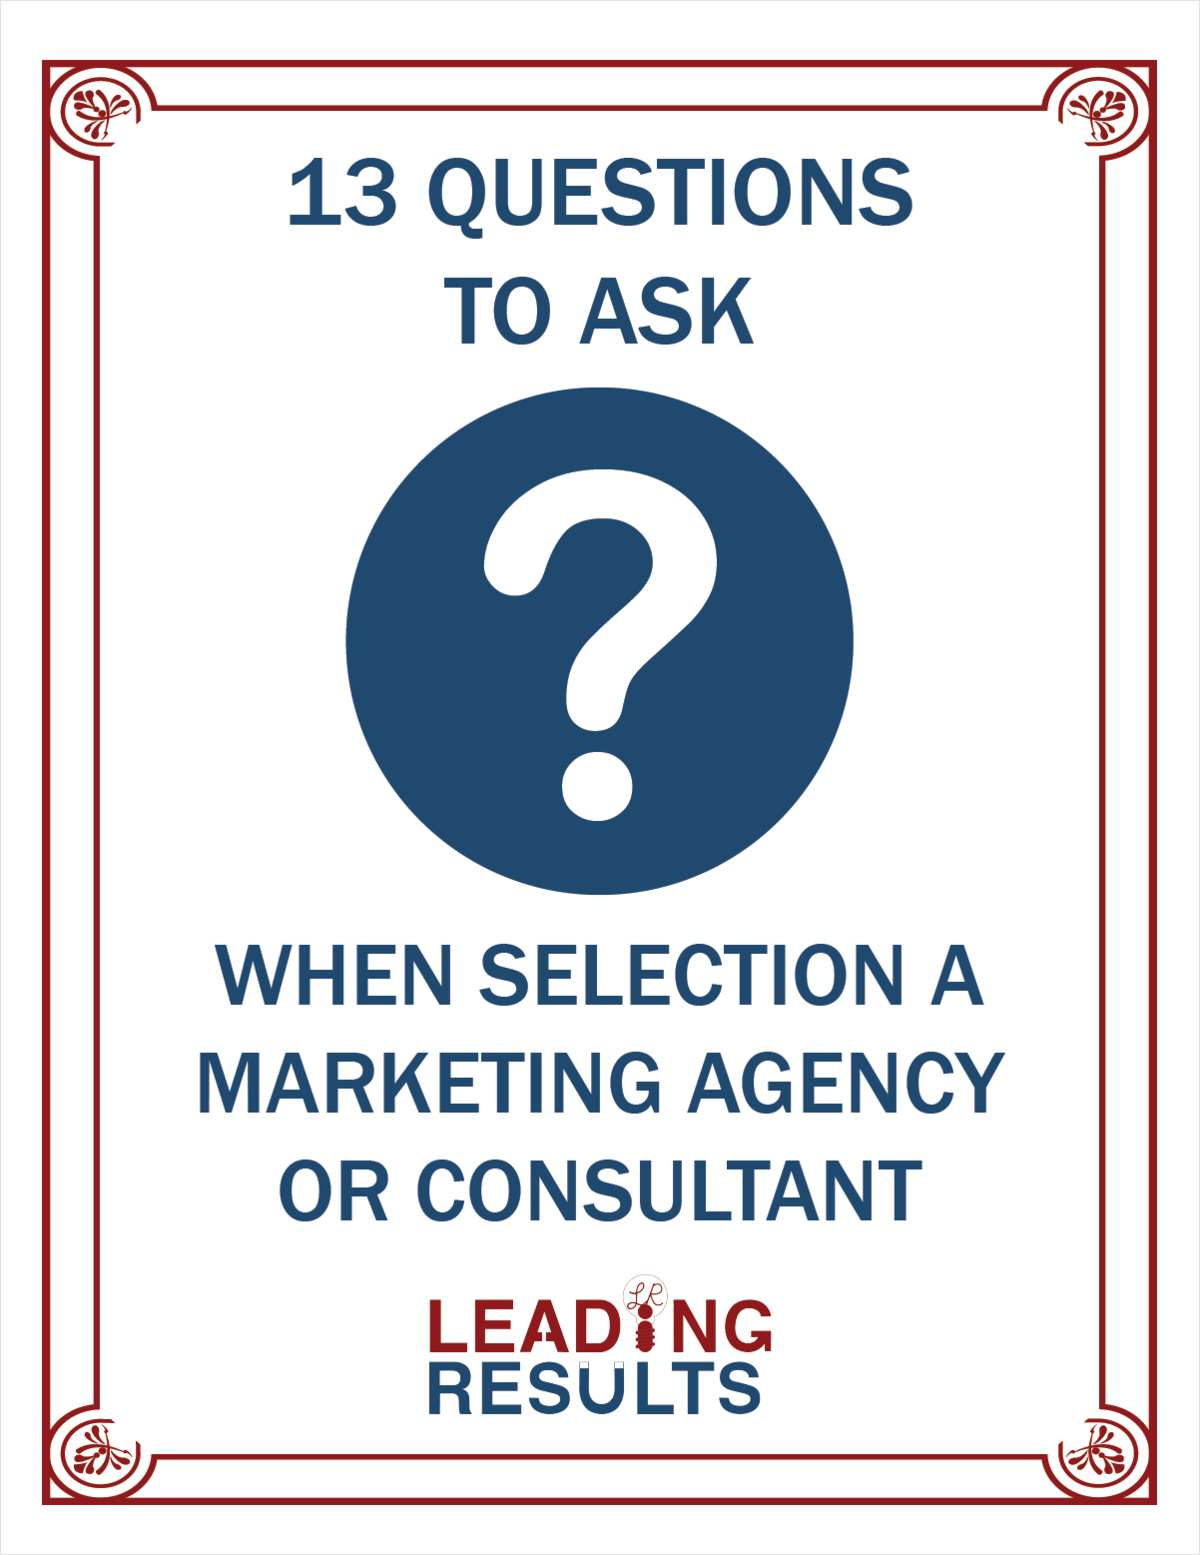 13 Questions to Ask When Selecting A Marketing Agency